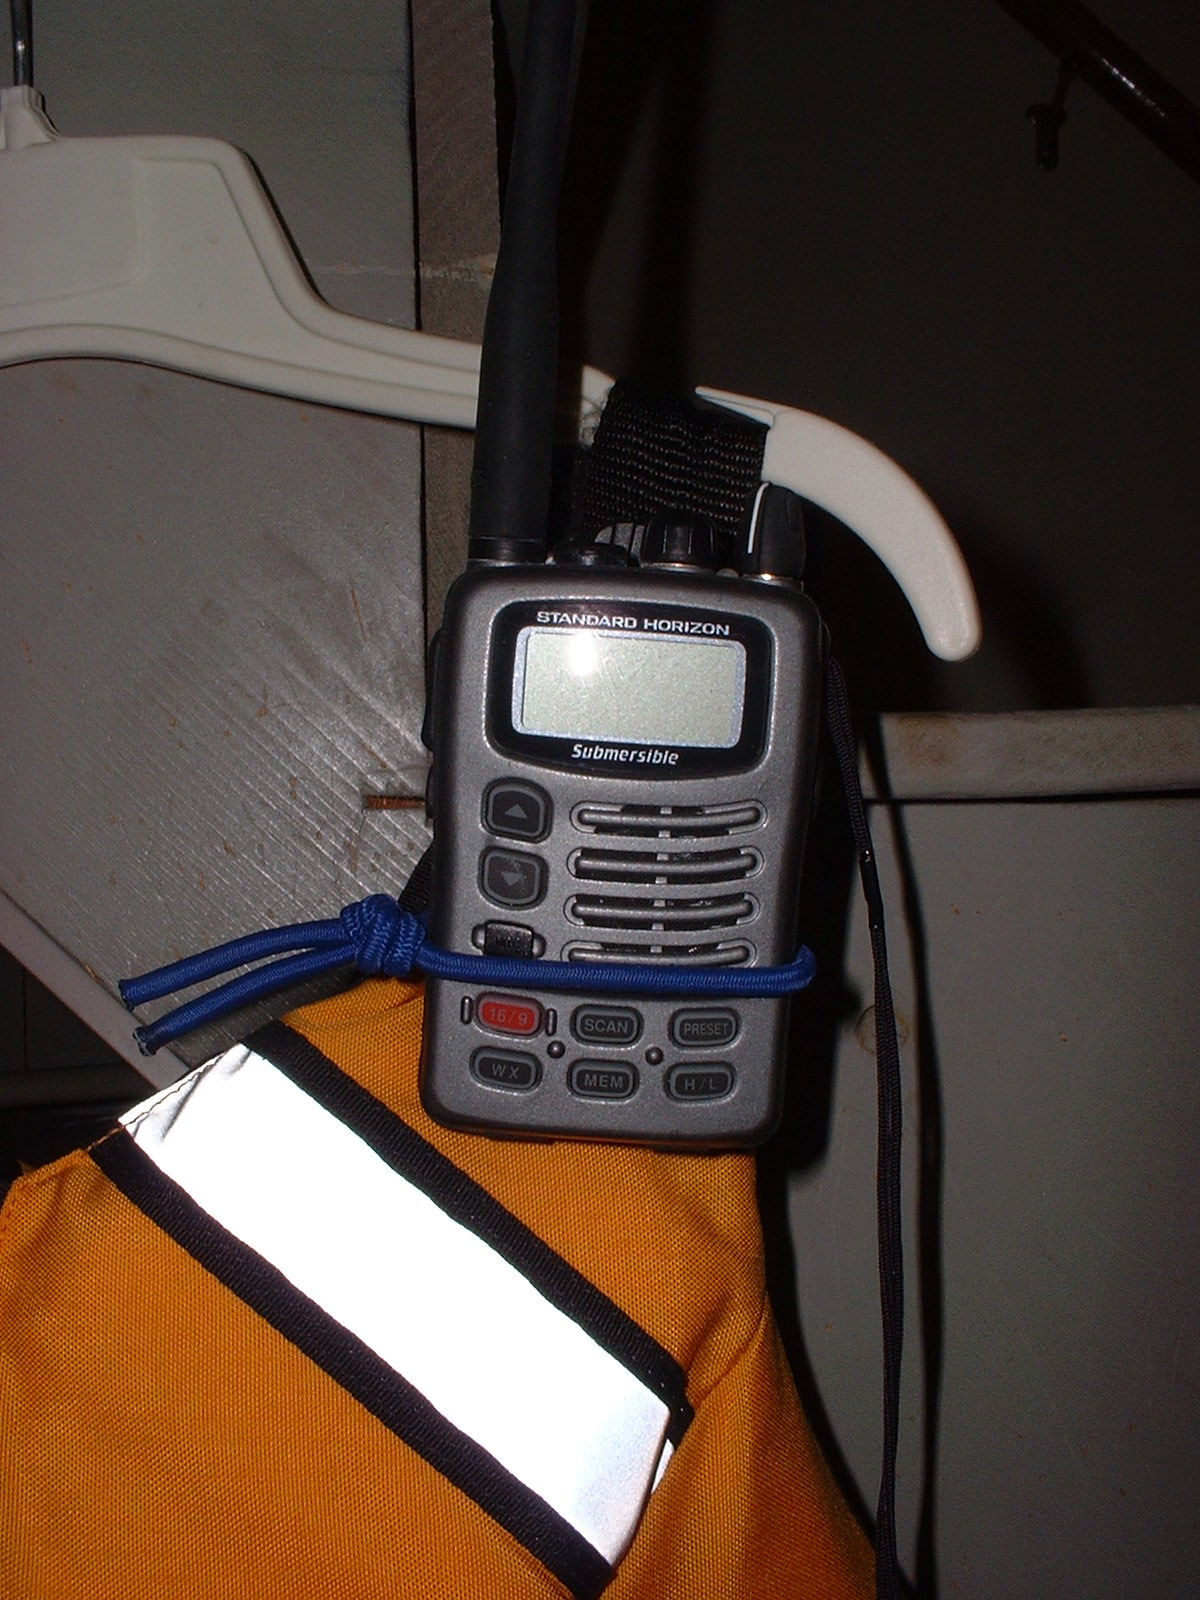 VHF radio in its mount on PFD shoulder strap